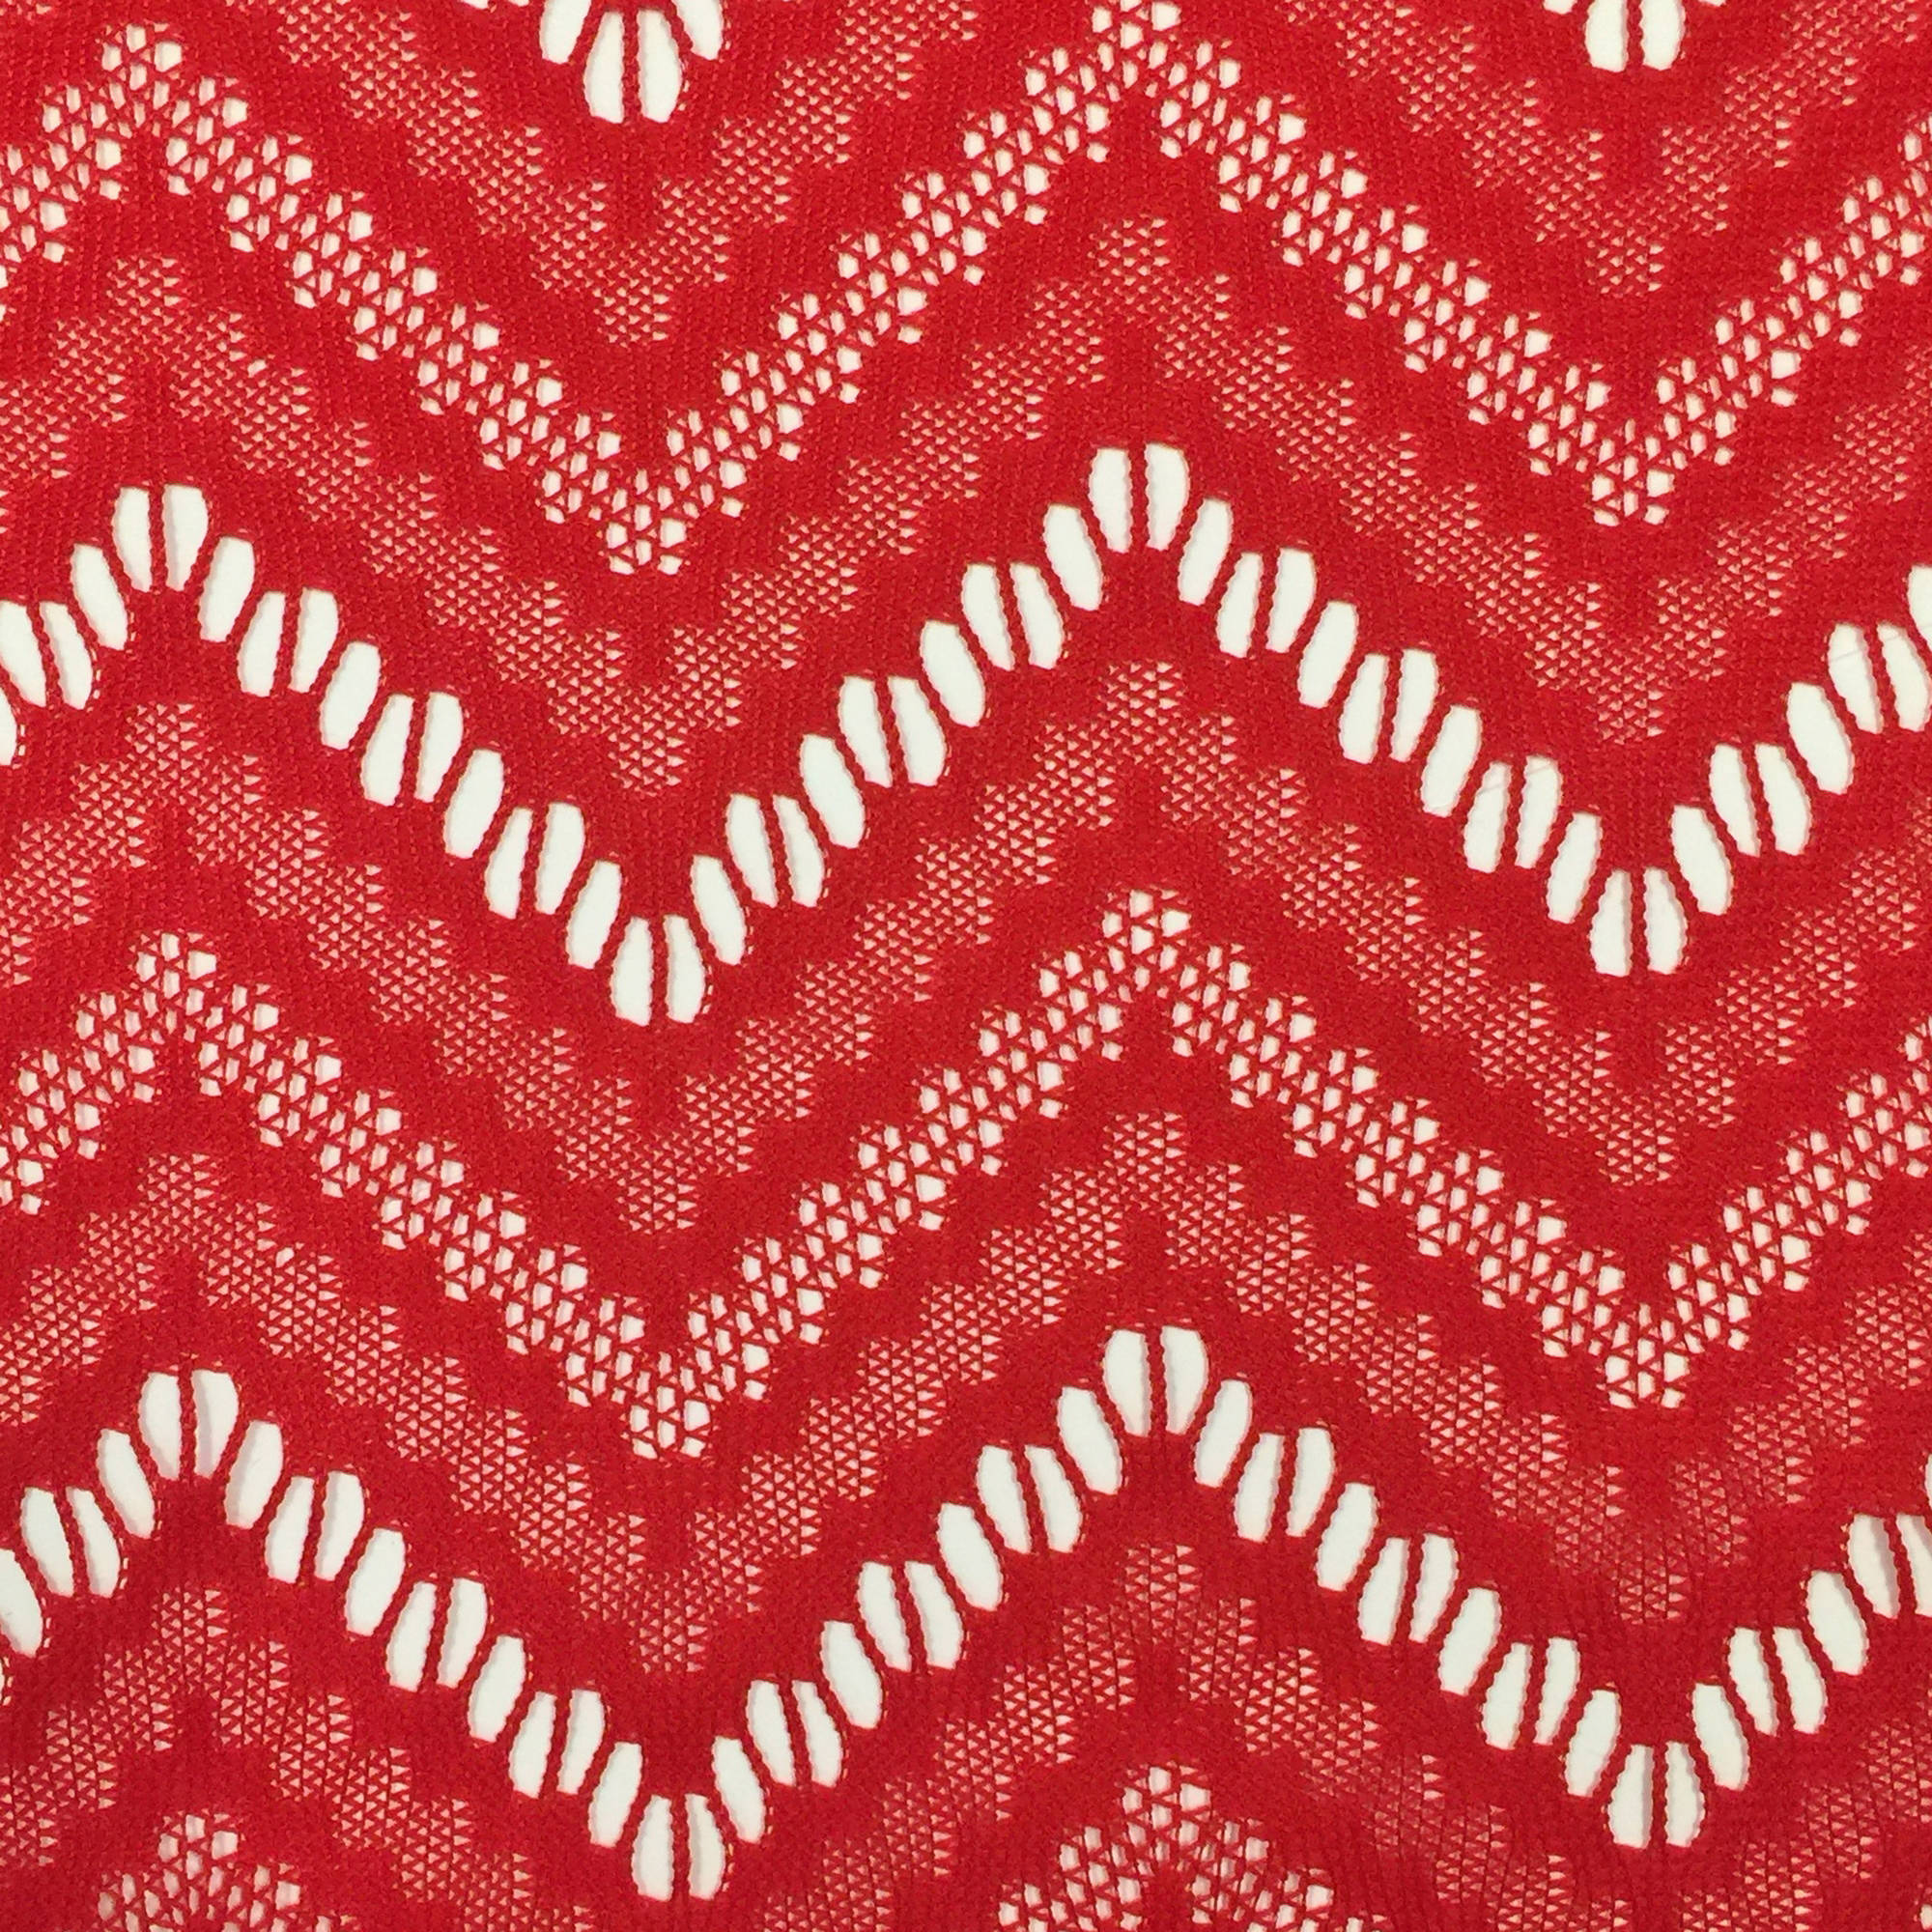 SHASON TEXTILE CROCHET CRAFTERS CHOICE FABRIC SOLID, RED, Available In Multiple Colors